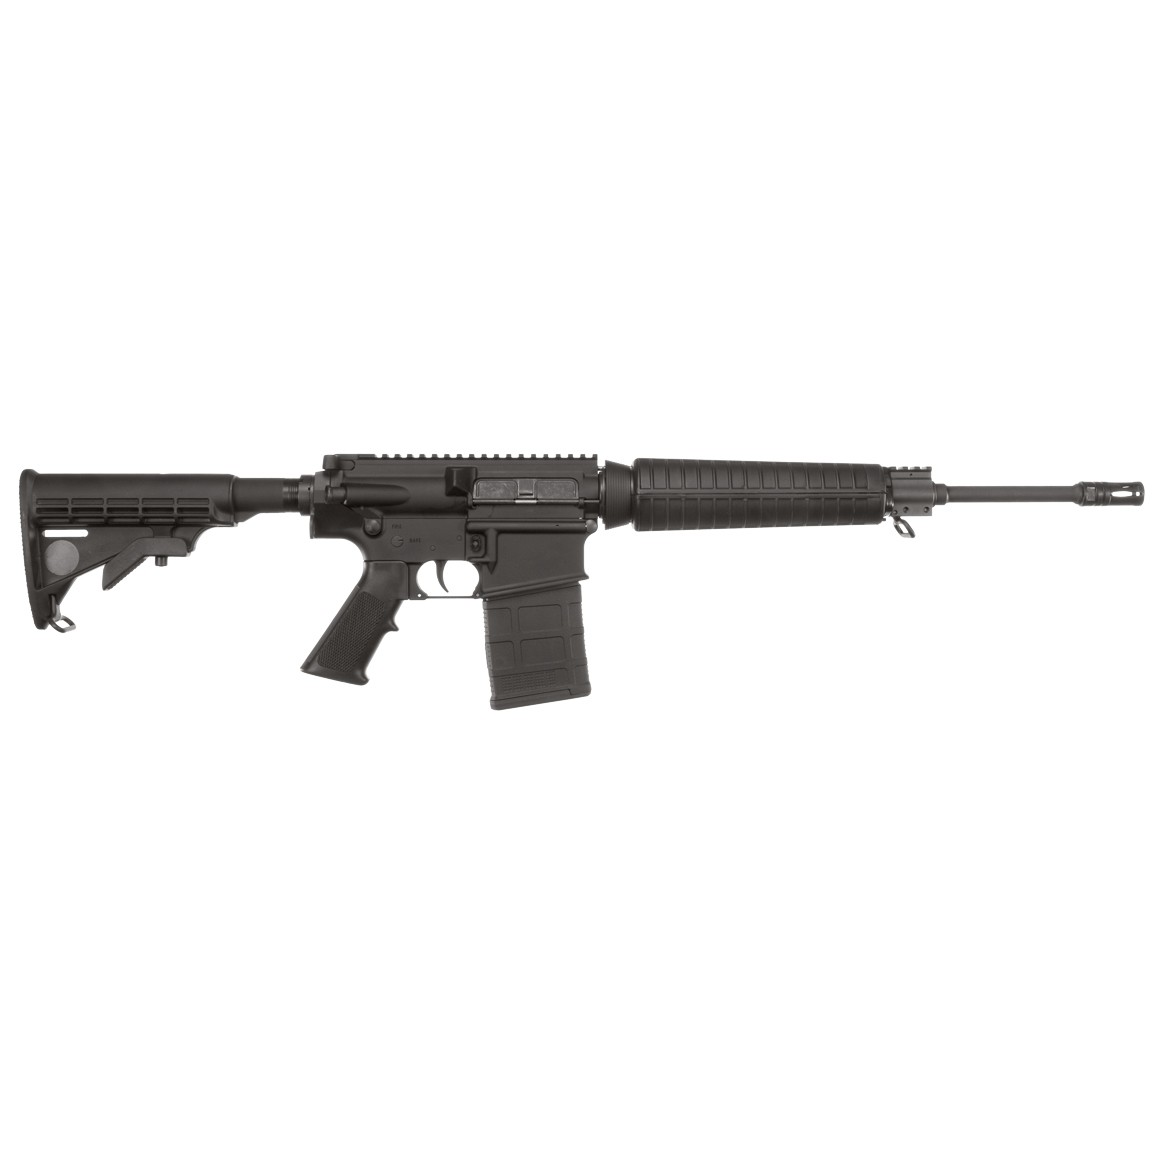 Armalite AR-10 Defensive Sporting Rifle 308 Win / 7.62x51